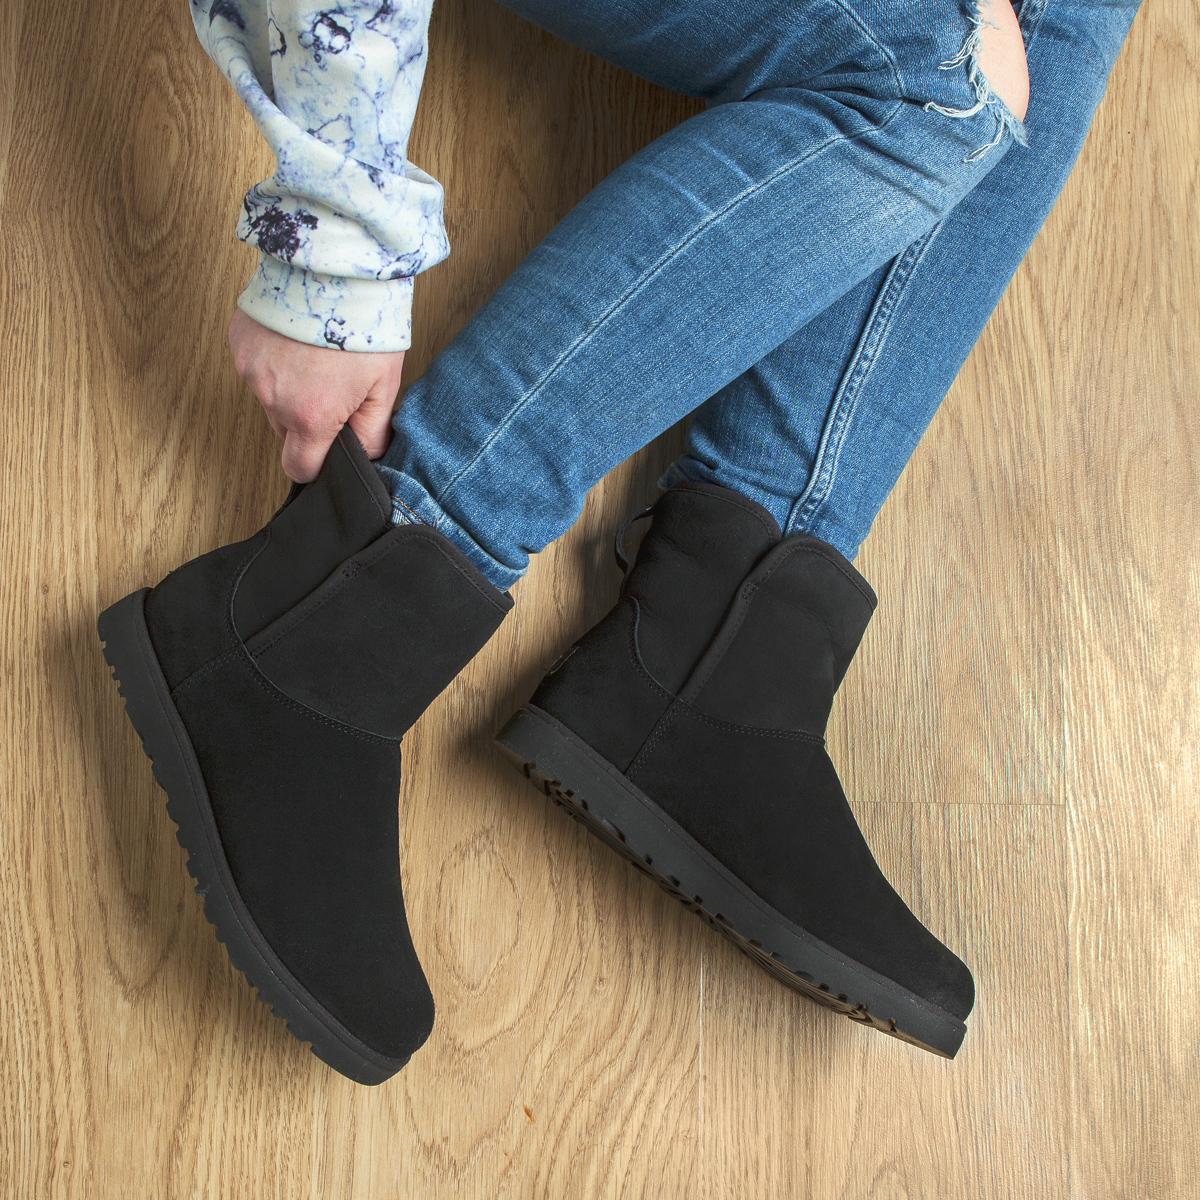 UGG Australia update their essential short boot for Autumn/Winter. The Cory Slim boot is top of our wish list!